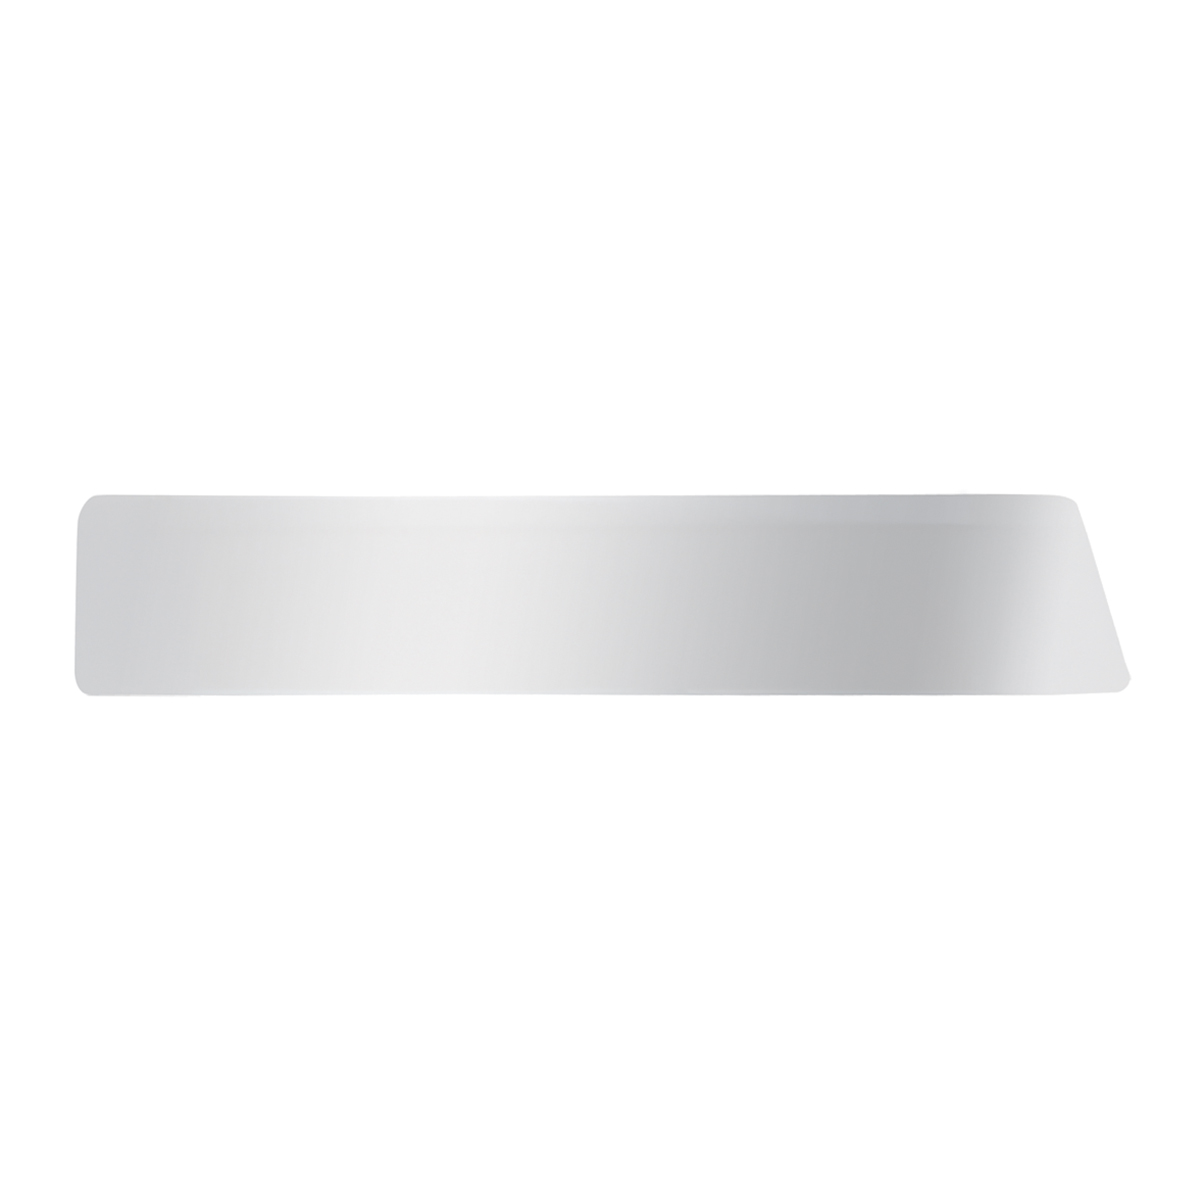 Glove Box Lower Trim for Freightliner Classic/FLD